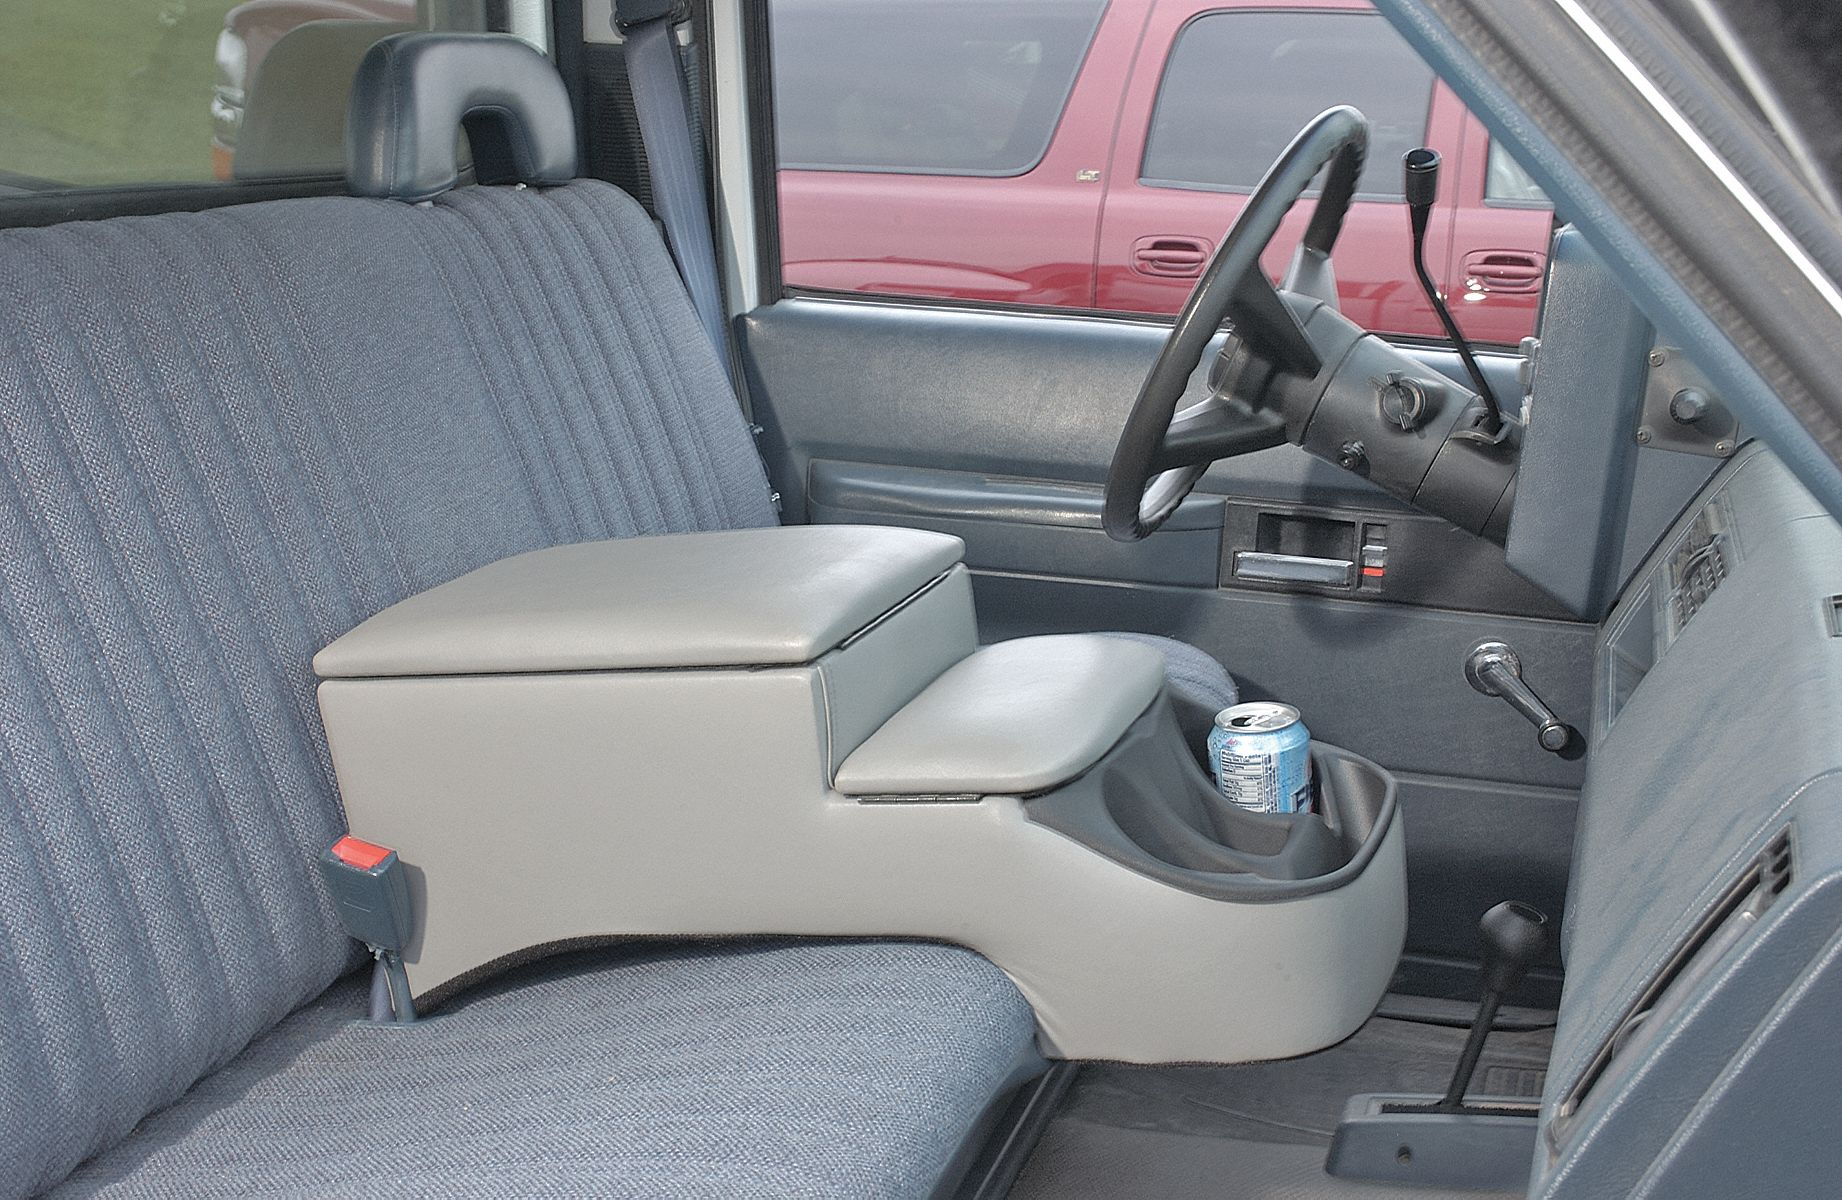 Very Impressive portraiture of Carolina Consoles Truck Seat Console Gry 10 1/2x11 3/4x25 Model: 380  with #874459 color and 1842x1200 pixels